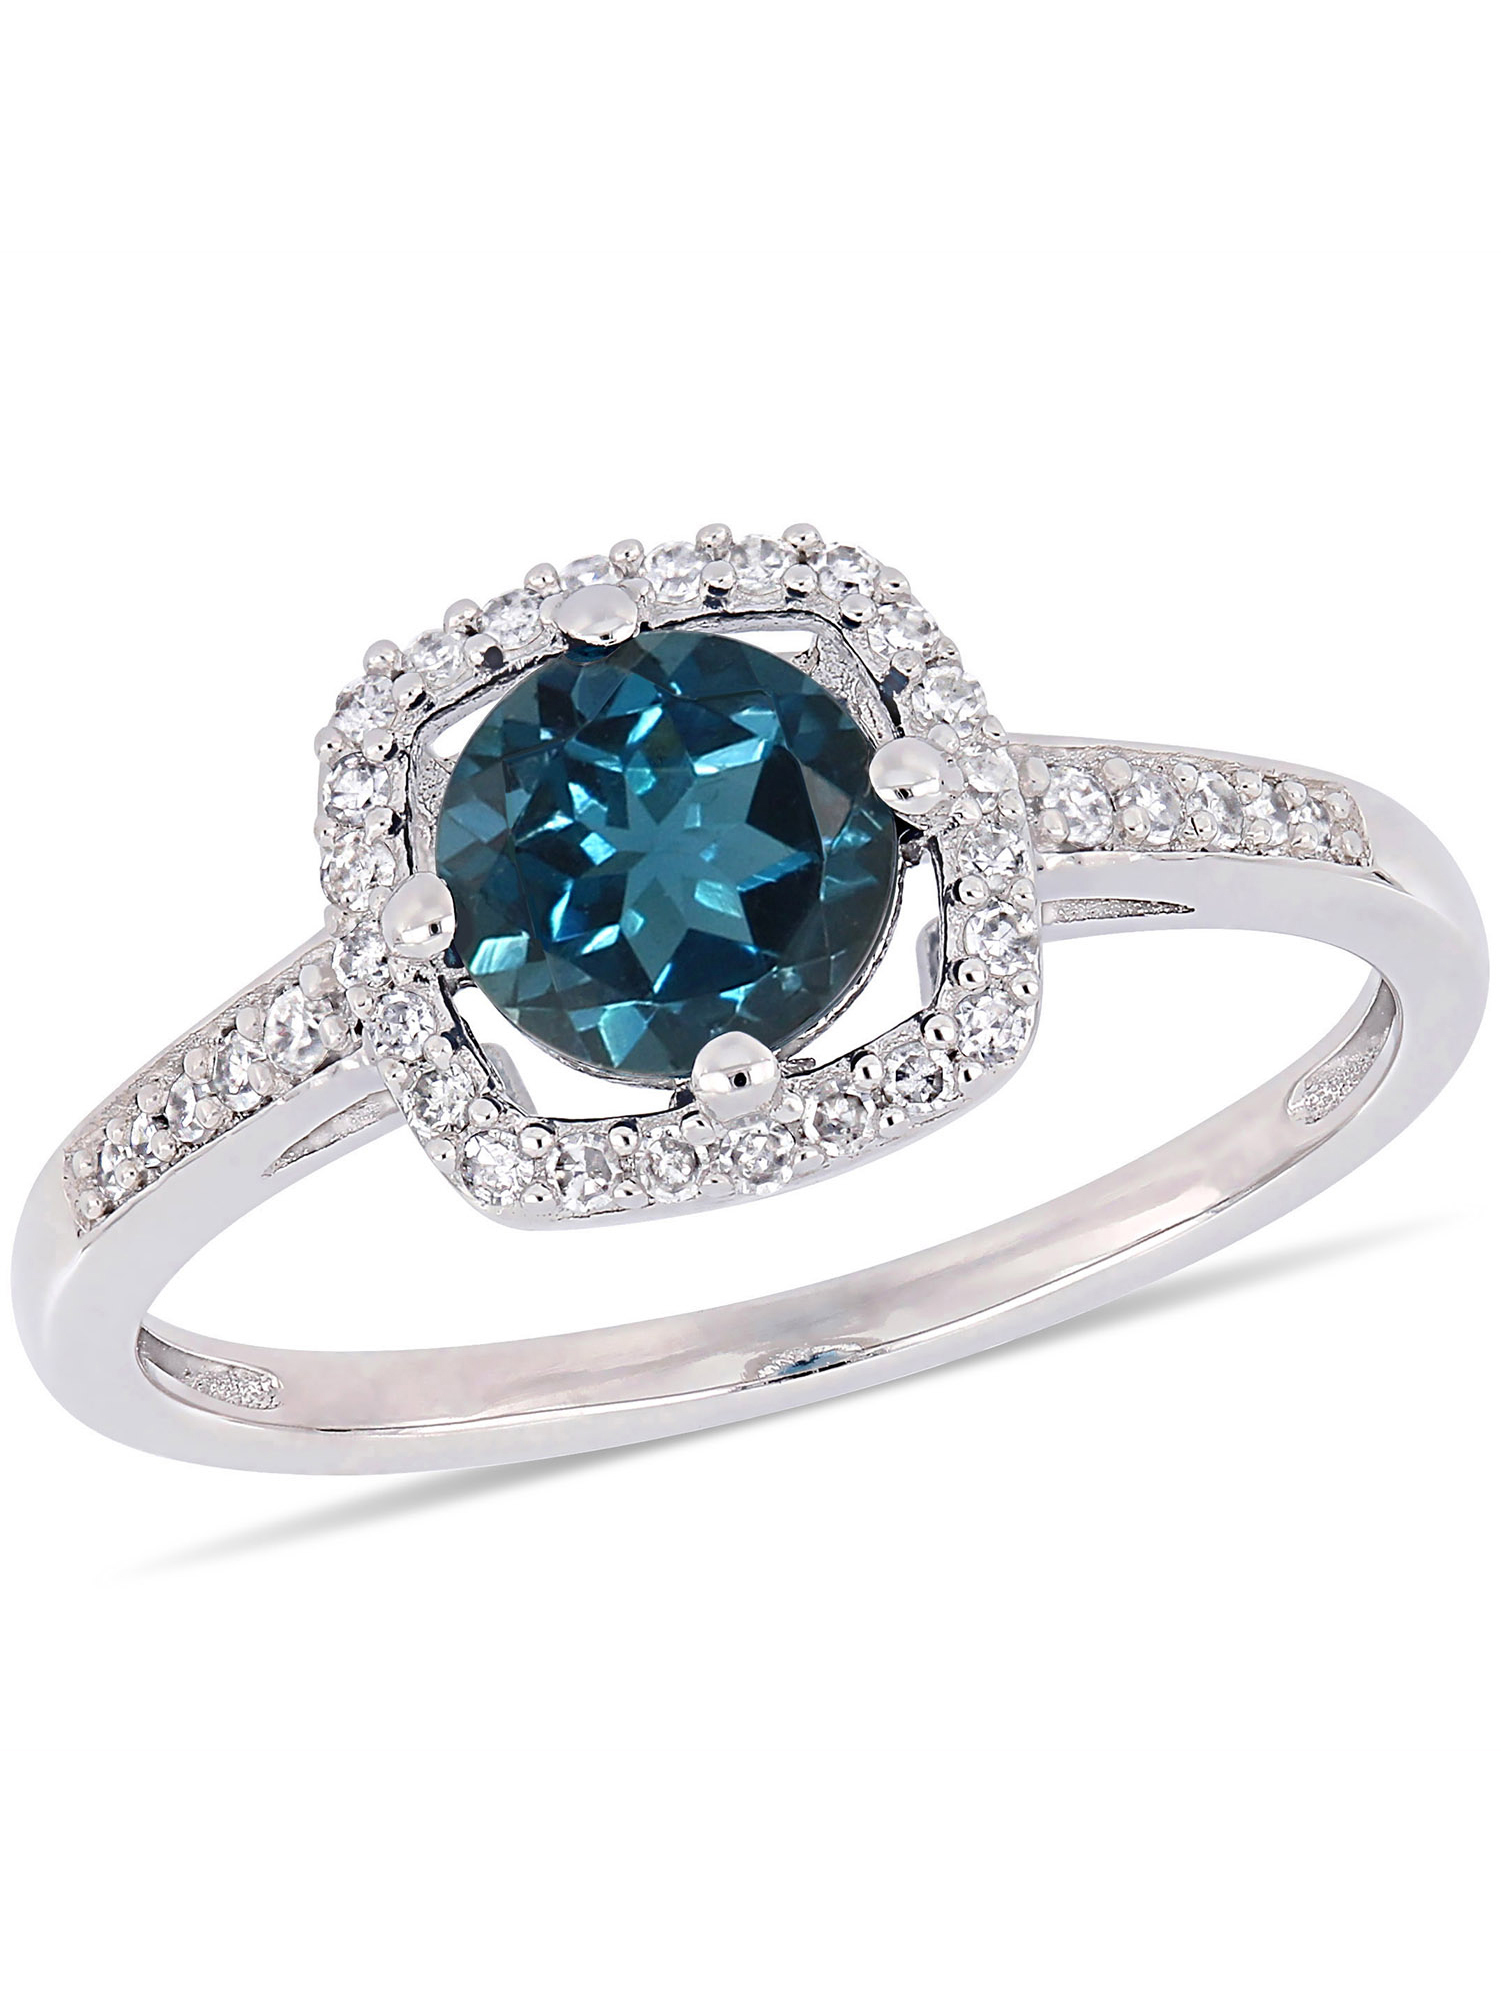 Tangelo 1 Carat T.G.W. London Blue Topaz and 1 7 Carat T.W. Diamond 10kt White Gold Halo Ring by Delmar